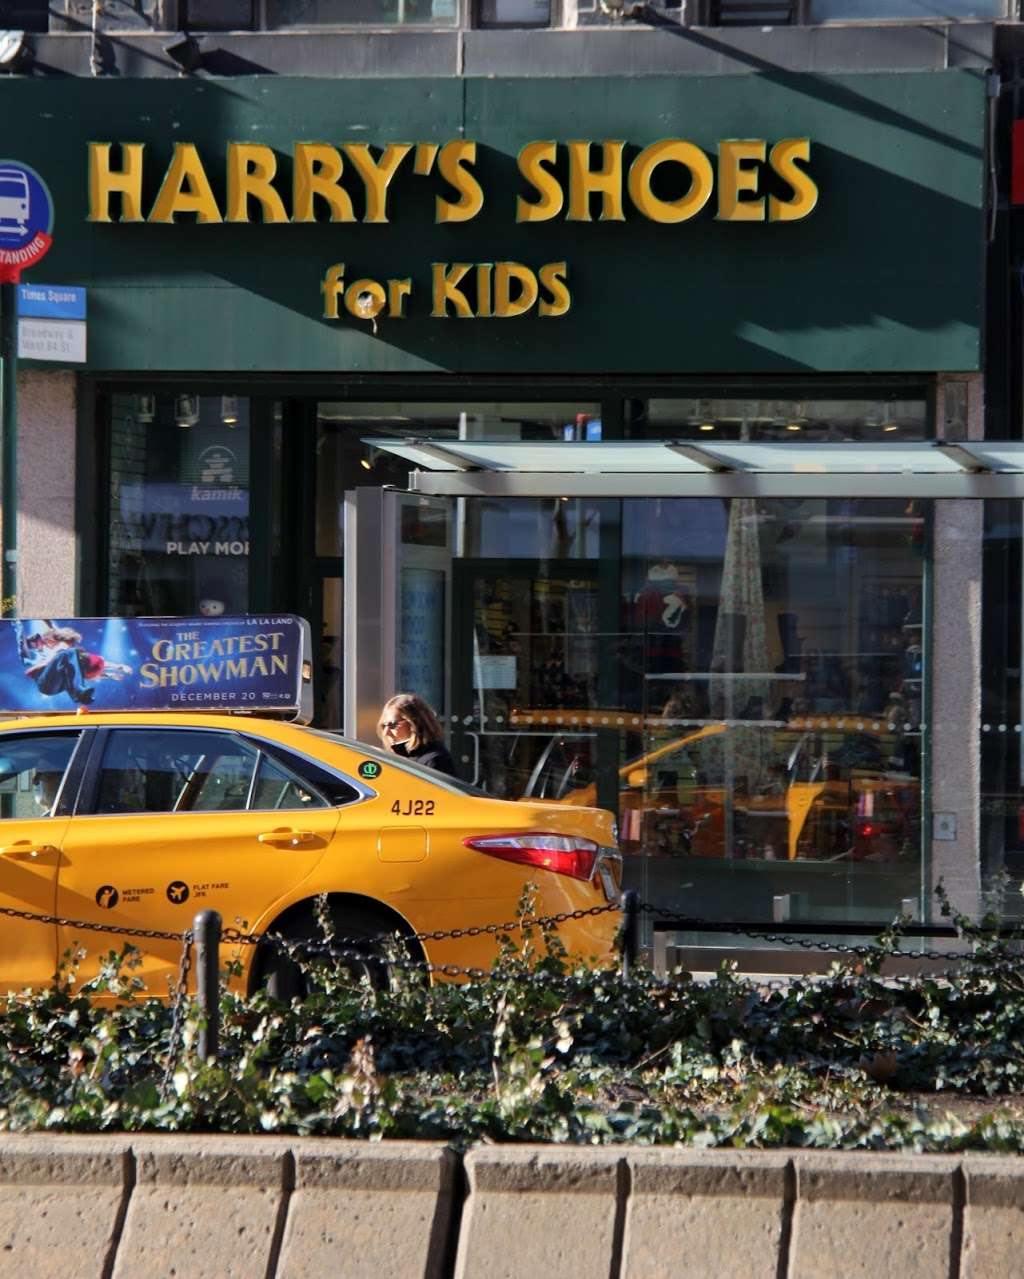 Harrys Shoes for Kids - shoe store  | Photo 3 of 10 | Address: 2315 Broadway, New York, NY 10024, USA | Phone: (855) 642-7797